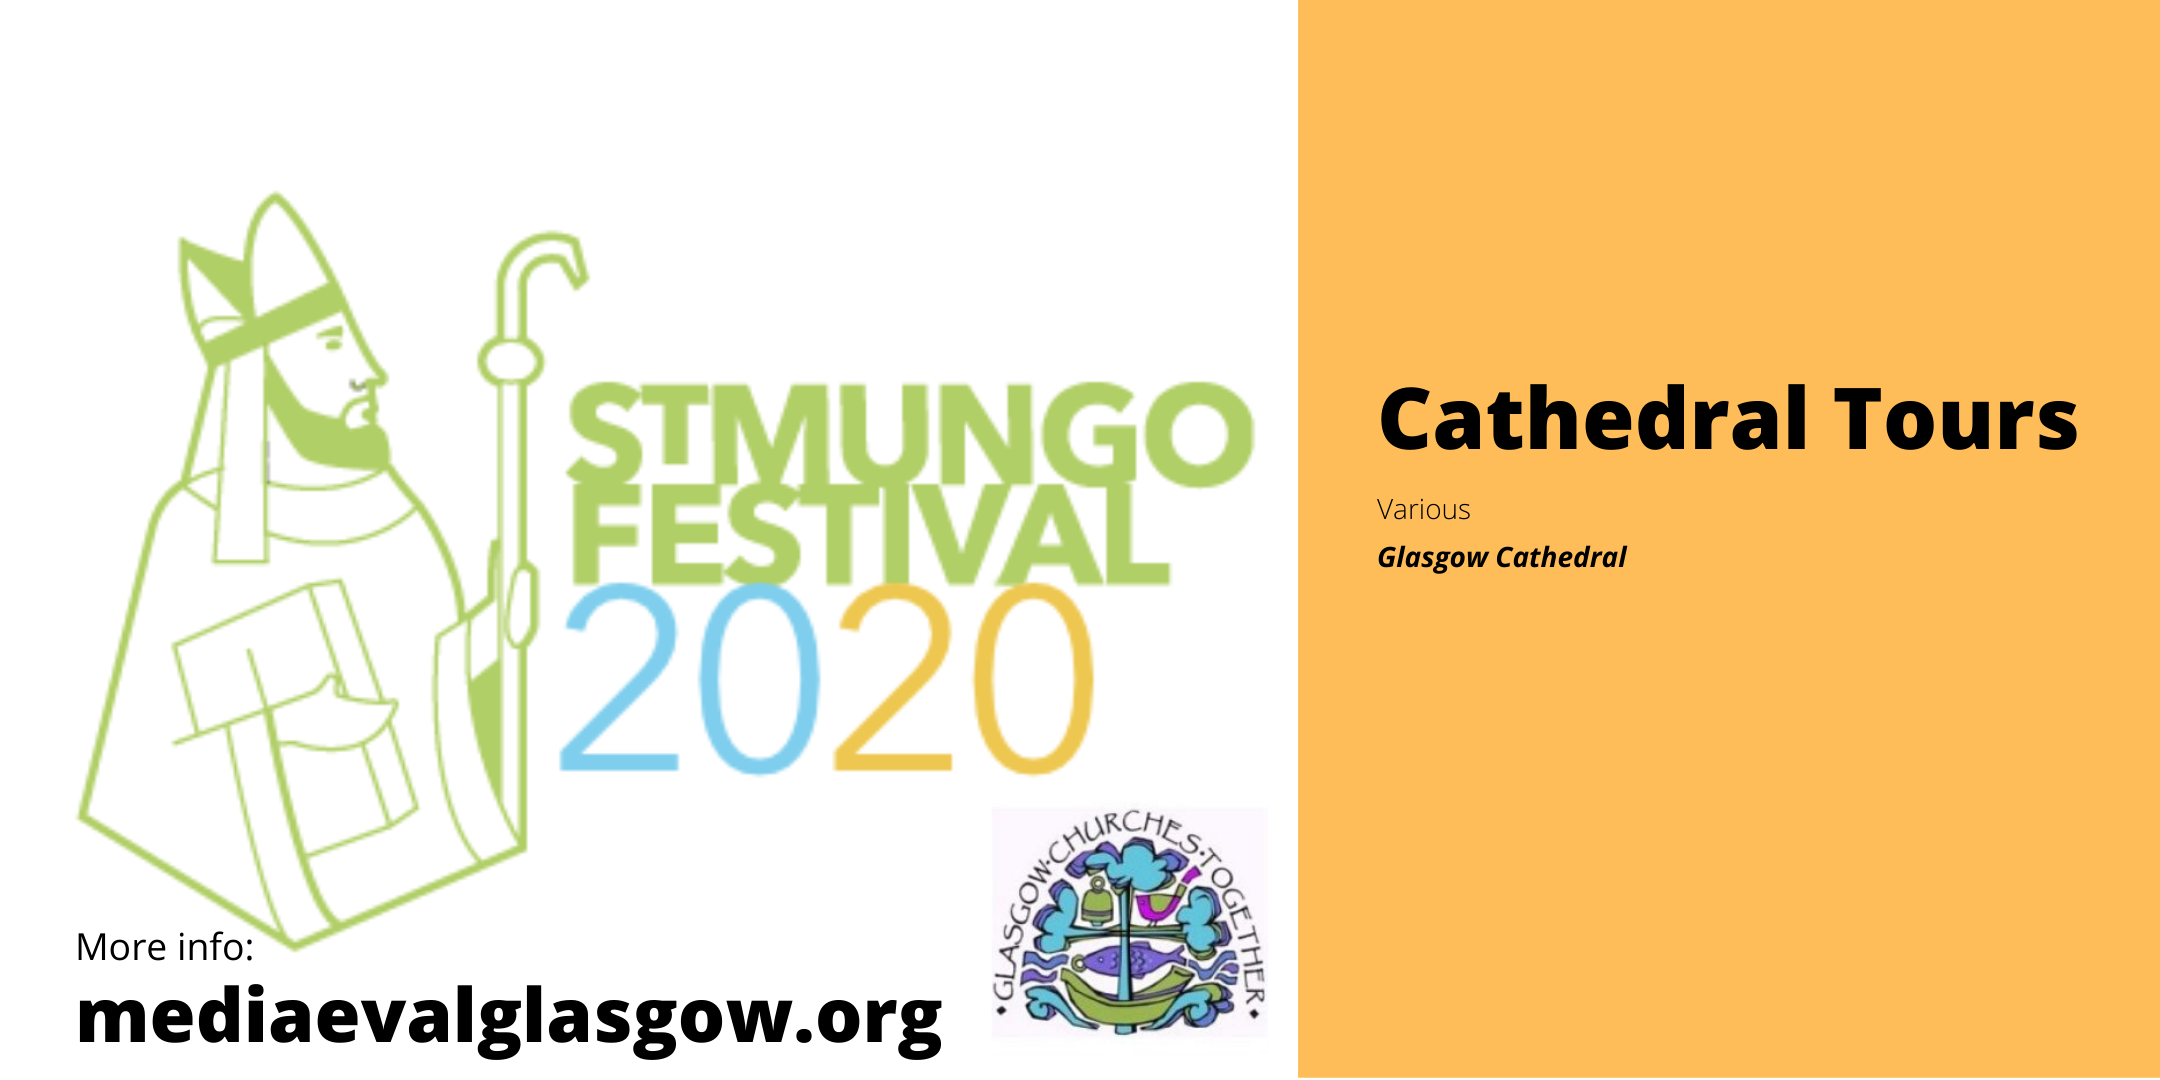 St Mungo 2020 - Glasgow Cathedral tours